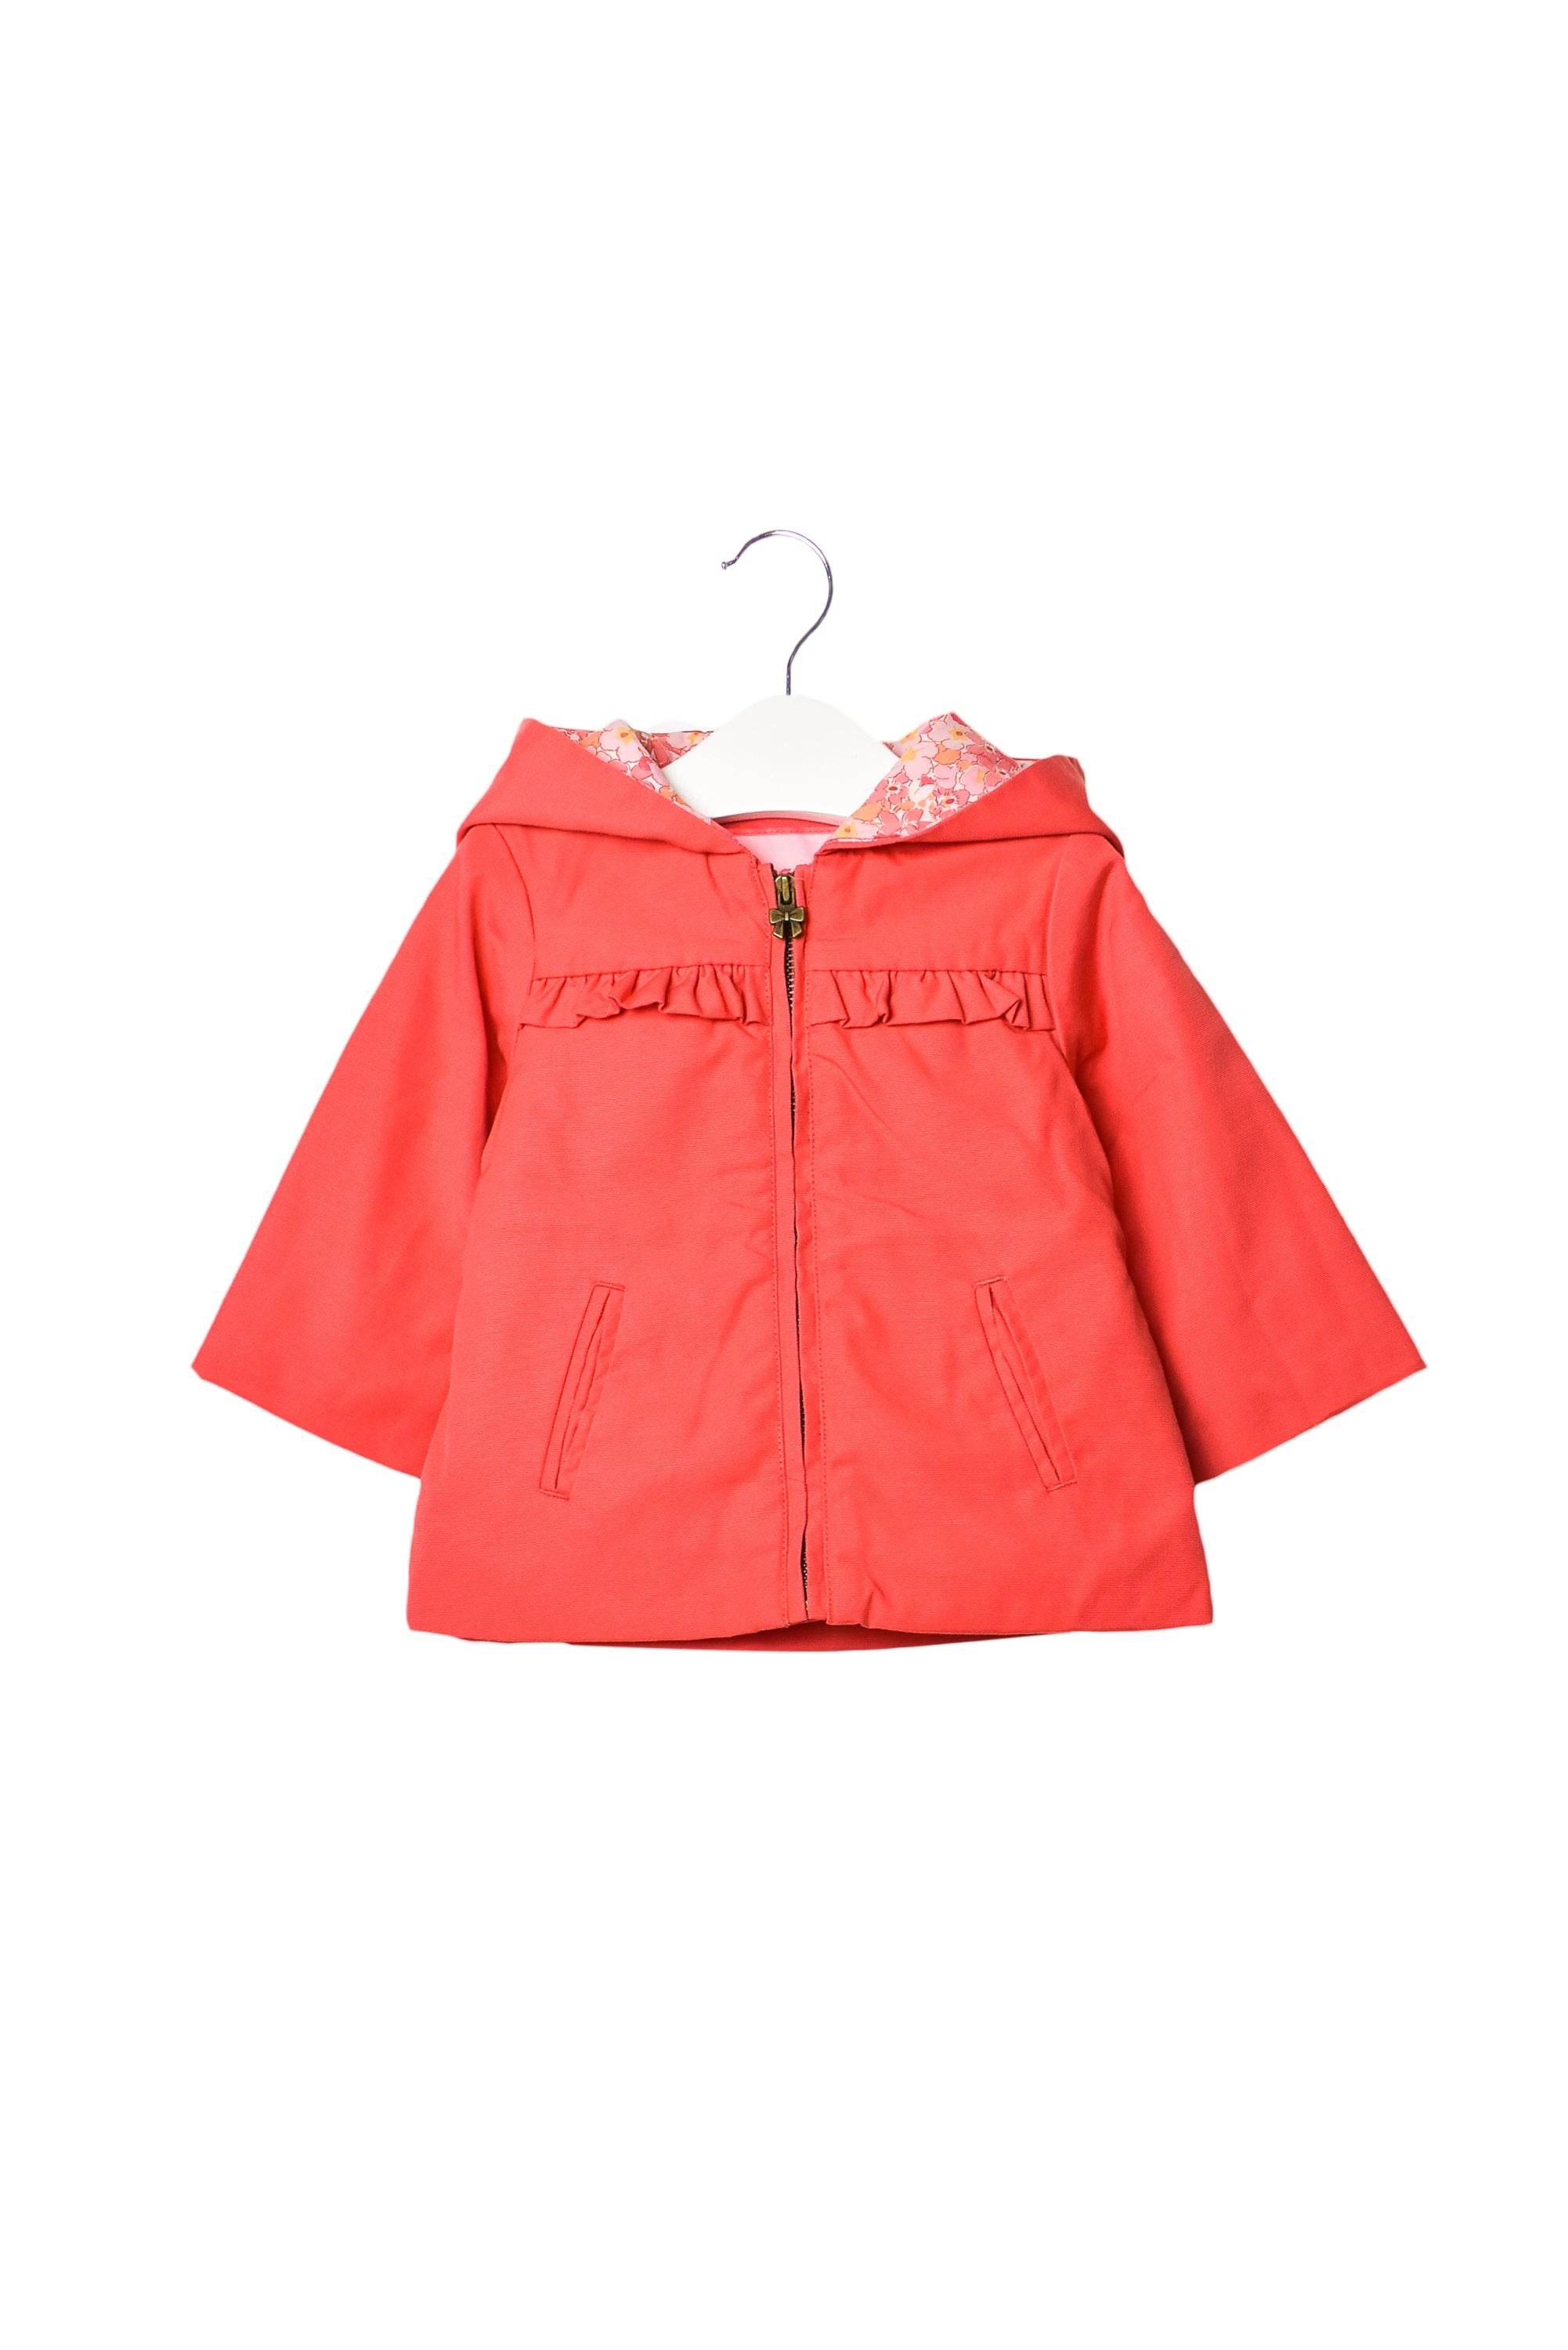 10008083 Jacadi Baby~ Jacket 6M at Retykle